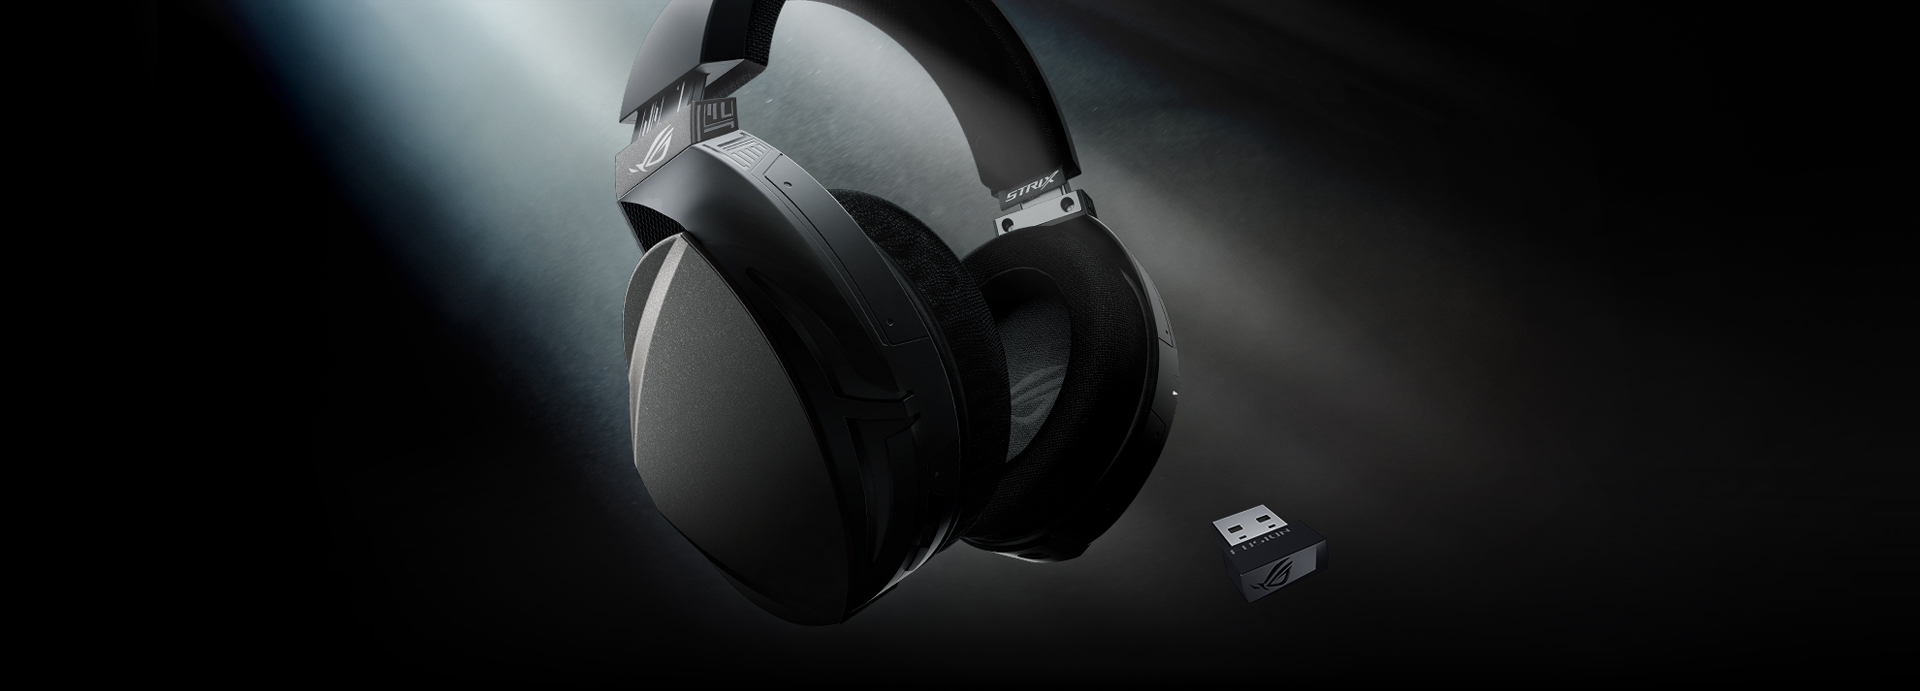 Game with more freedom and control. ROG Strix Fusion Wireless is a wireless  gaming headset ... 58829aef1369